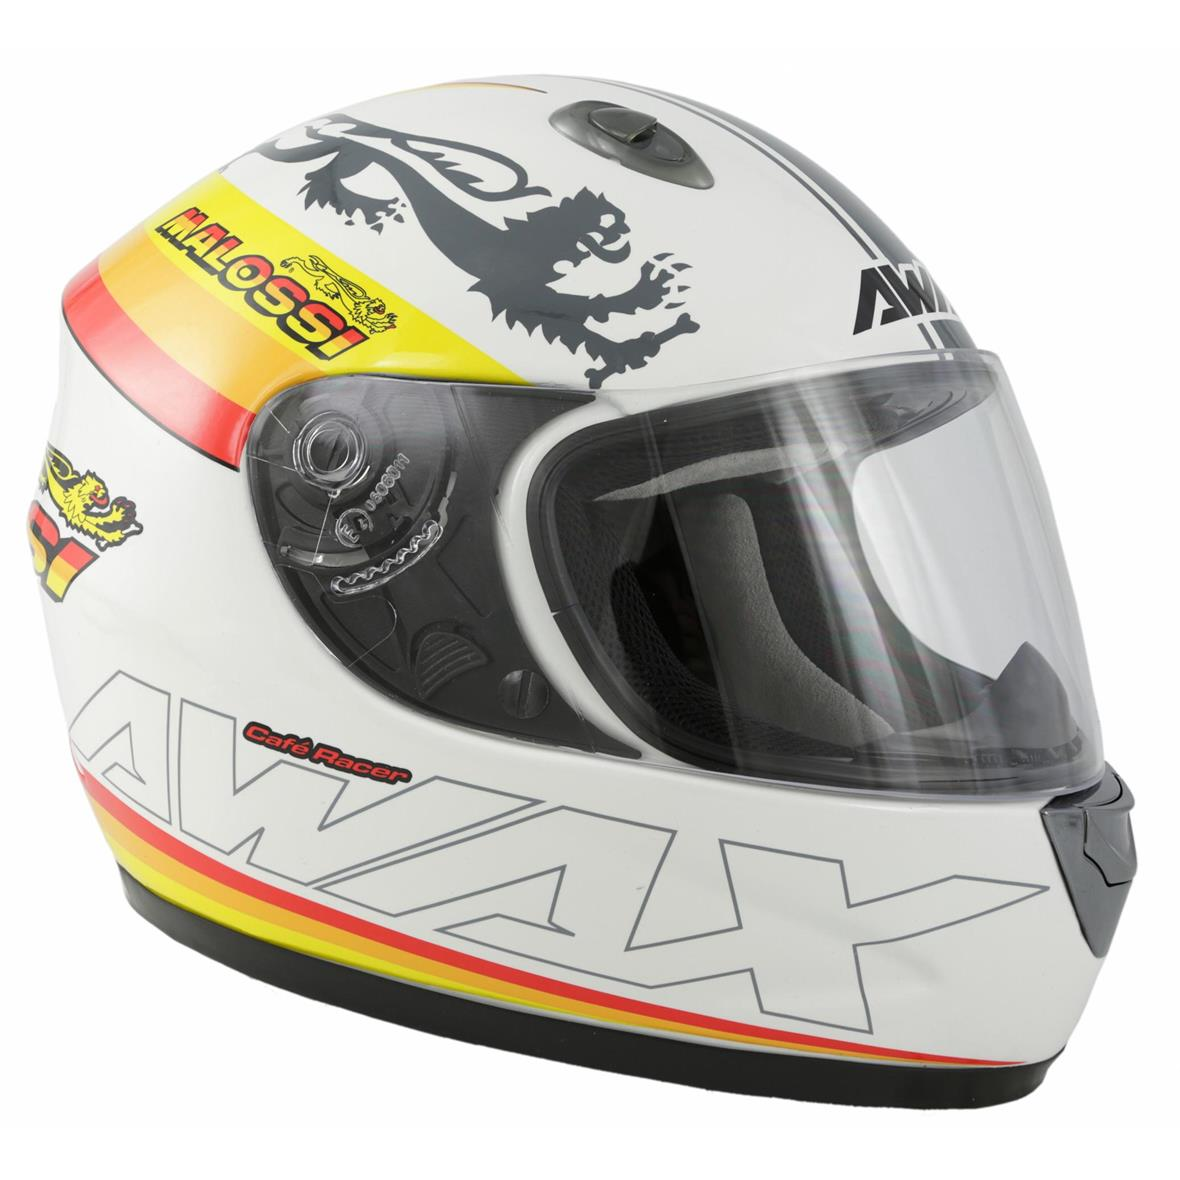 "Product Image for 'Helmet MALOSSI Full Face ""Café Racer Malossi""Title'"